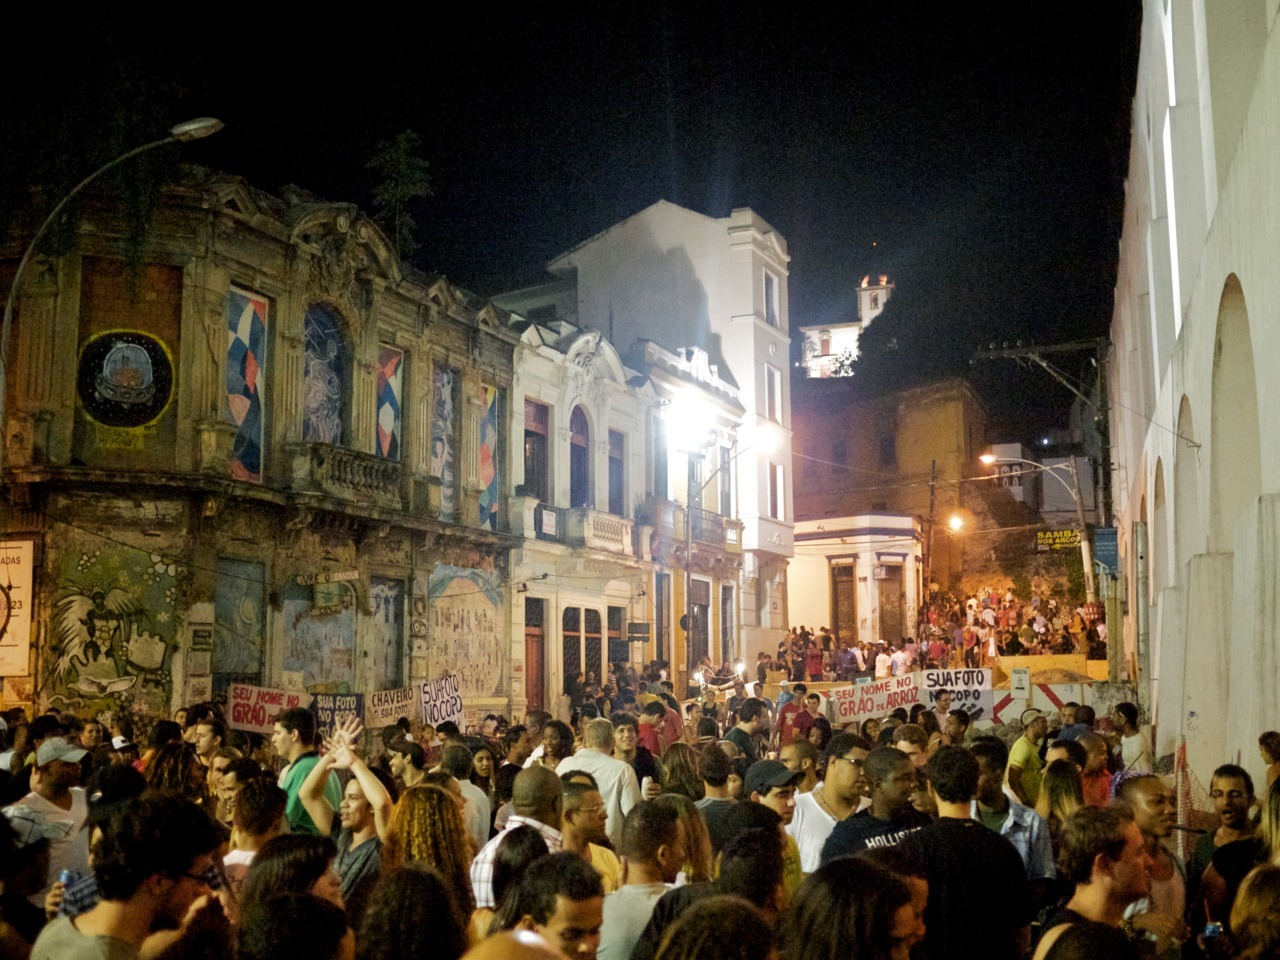 Lapa. 3am, Friday night.